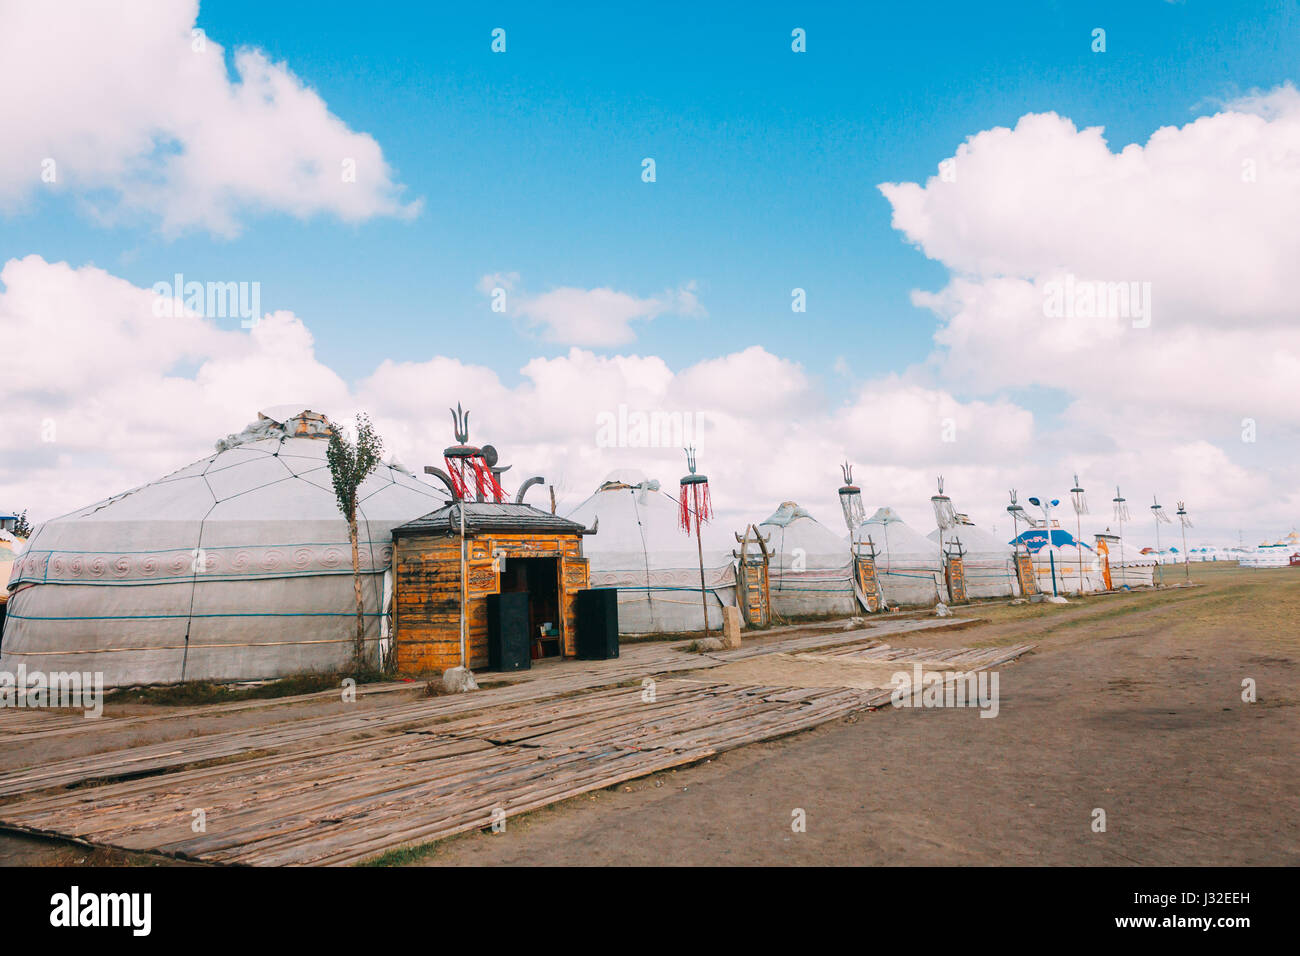 Landscapes of Mongolia, yurts against the backdrop of blue sky - Stock Image